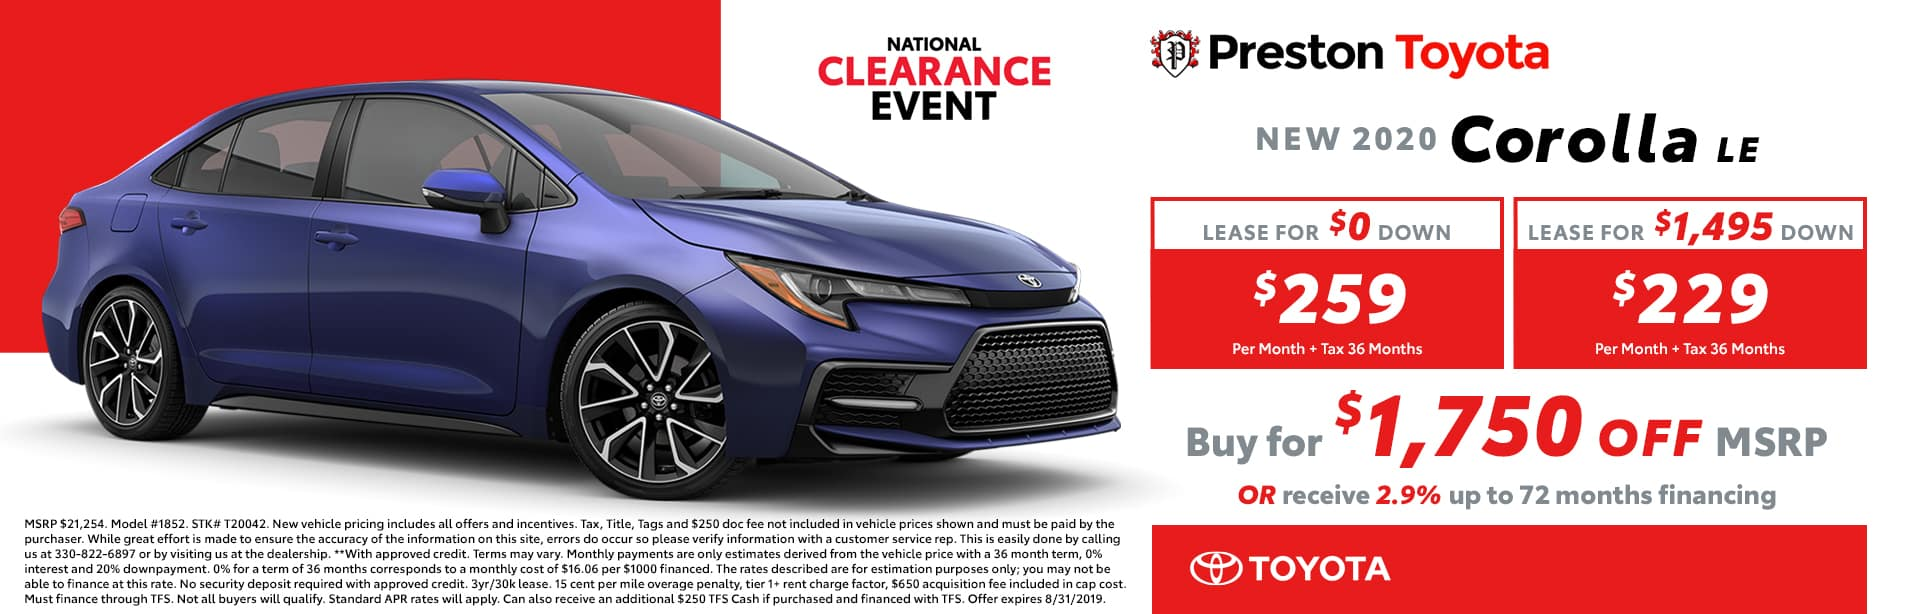 August special on the 2019 Corolla